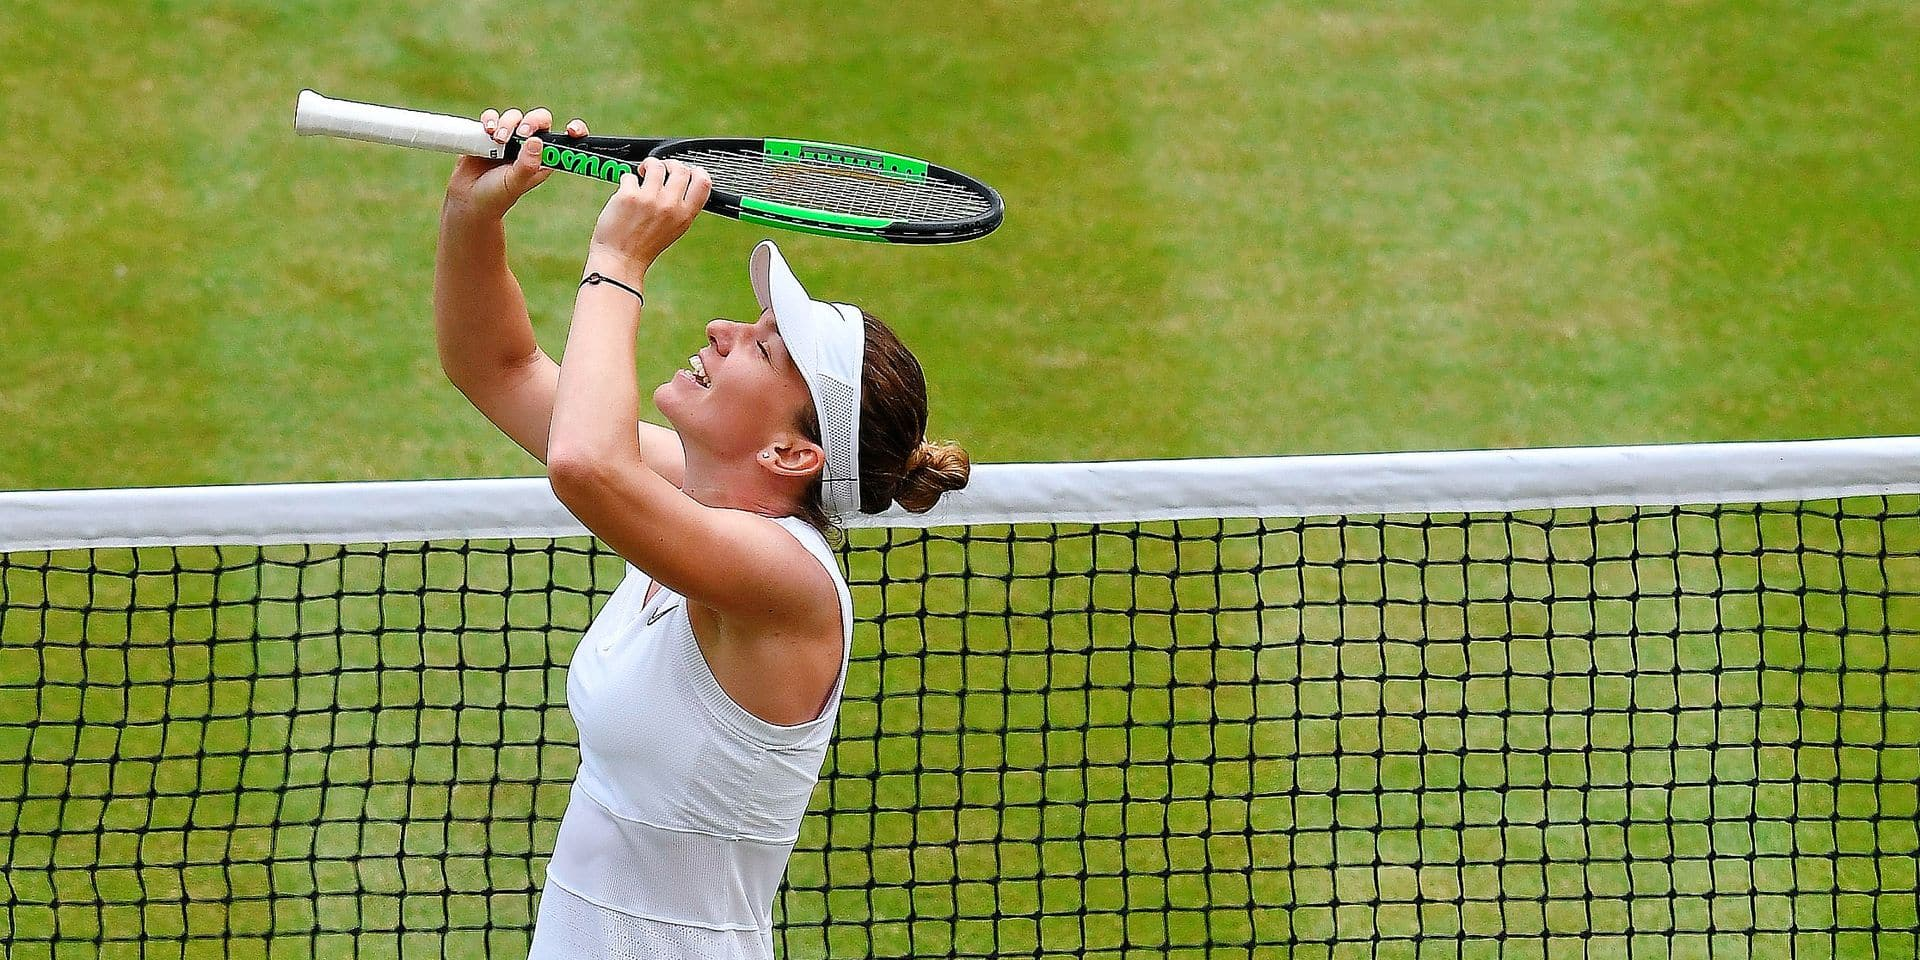 Romania's Simona Halep celebrates after beating Ukraine's Elina Svitolina in a Women's semifinal singles match on day ten of the Wimbledon Tennis Championships in London, Thursday, July 11, 2019. (Ben Stansall/Pool Photo via AP)